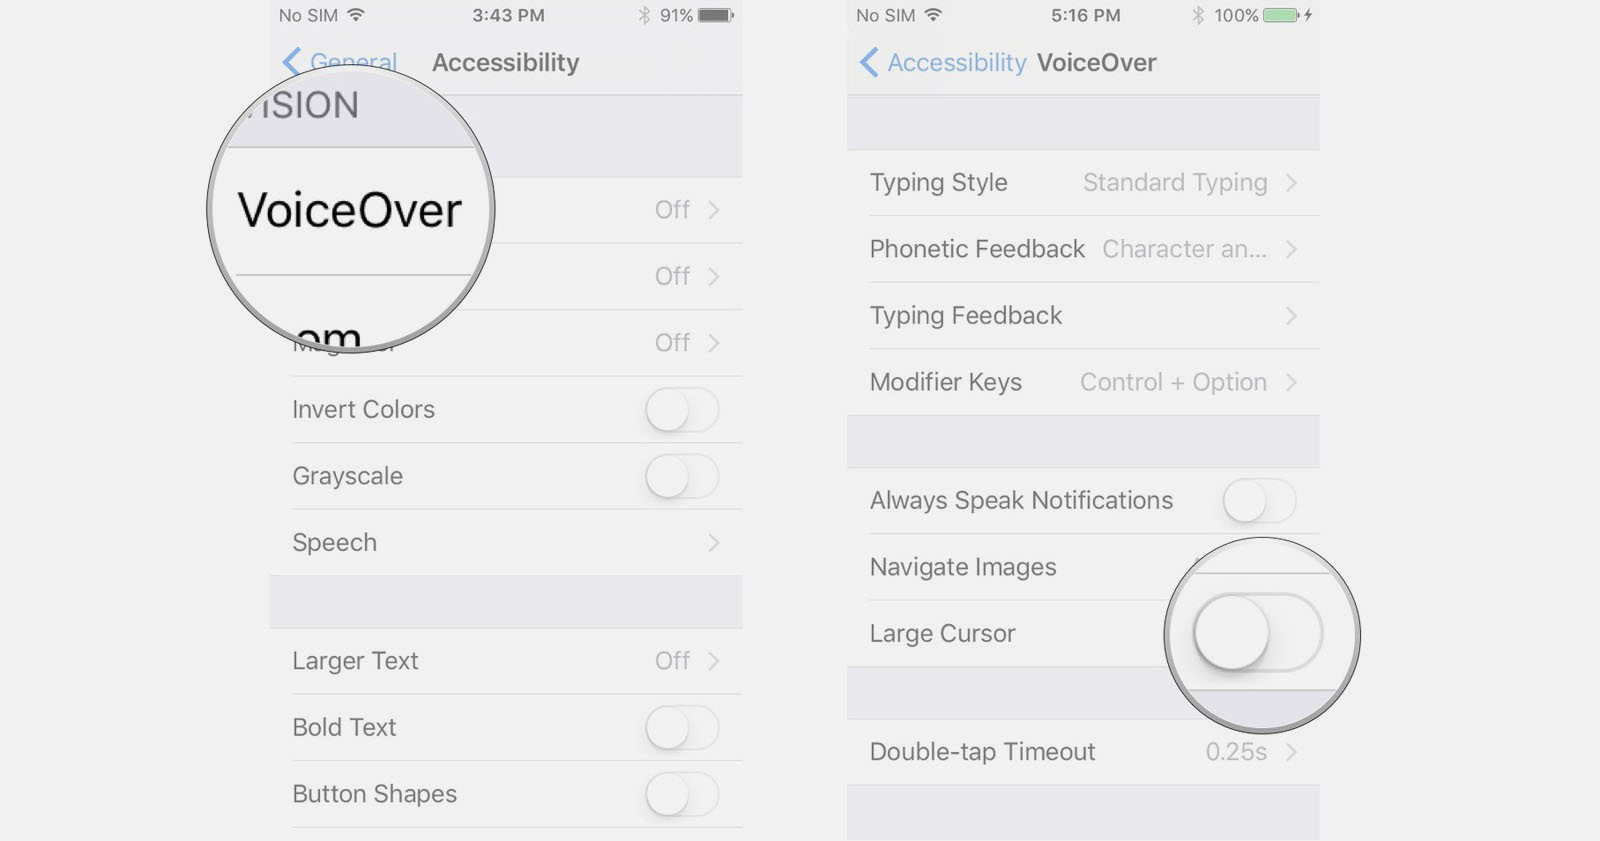 accessibility-ios10-voiceover-large-cursor-screens-02.jpeg